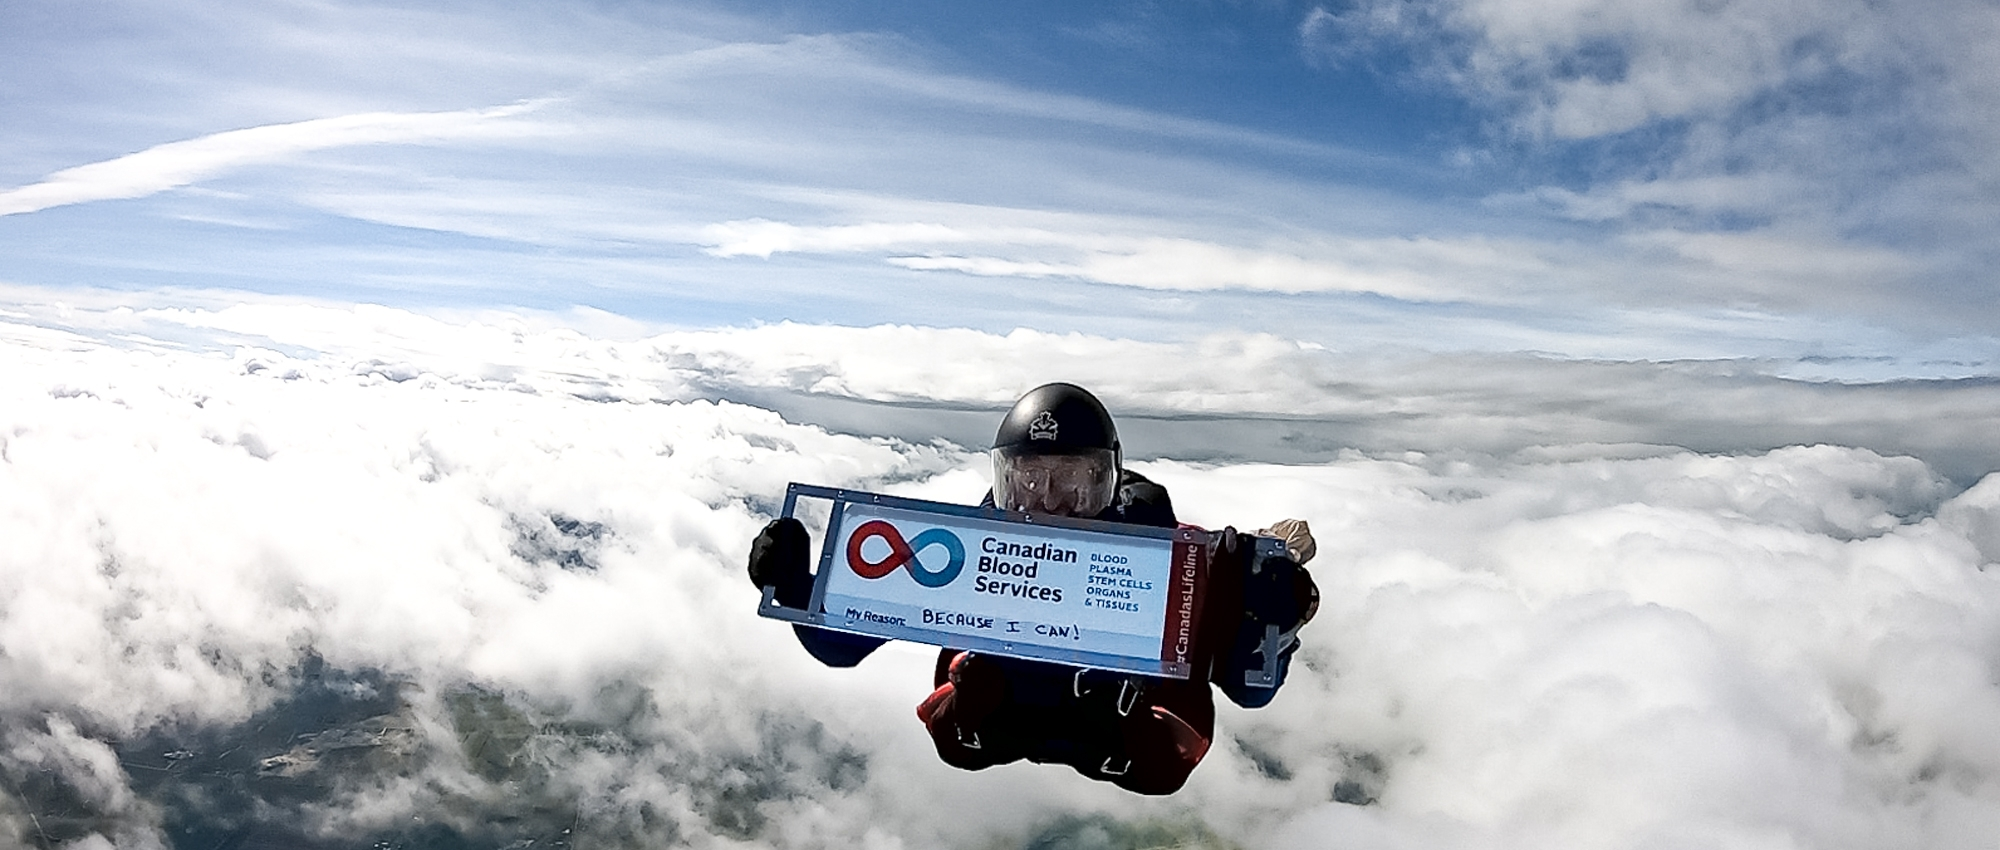 Big Image of Ian Harrop holding up a sign of Canadian Blood Services of his 600th blood donation while skydiving